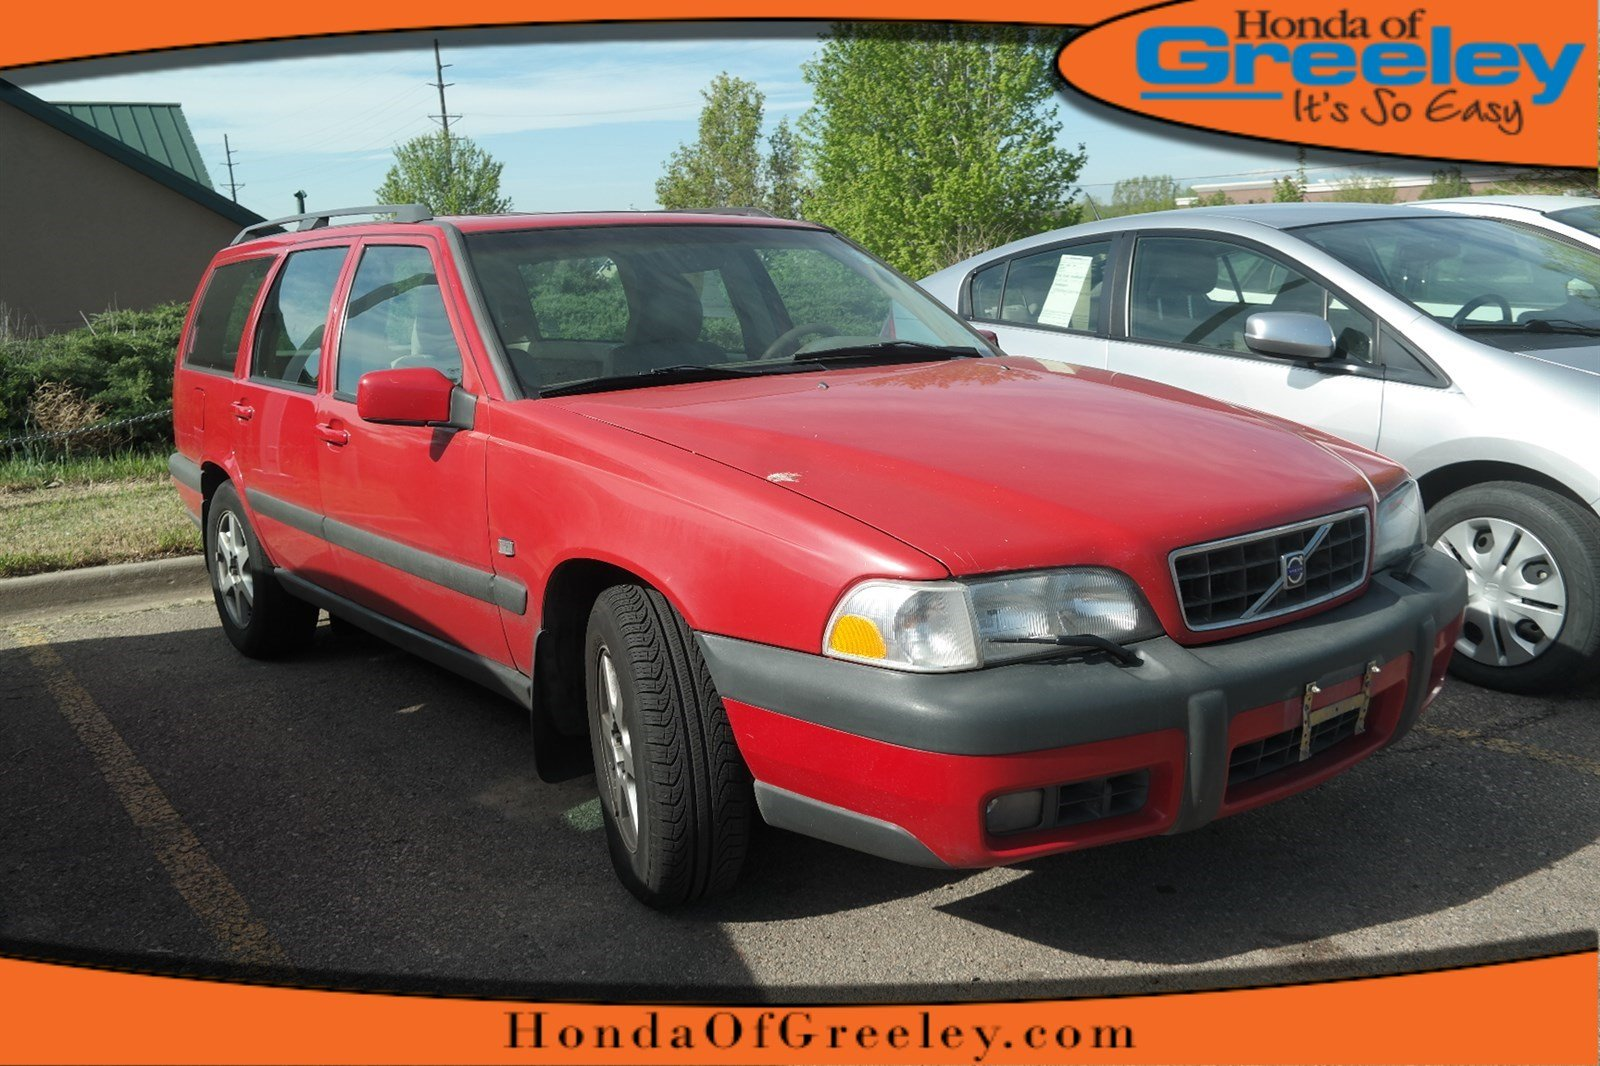 Photo Pre-Owned 1999 Volvo V70 XC 4-Wheel Drive Station Wagon For Sale in Greeley, Loveland, Windsor, Fort Collins, Longmont, Colorado